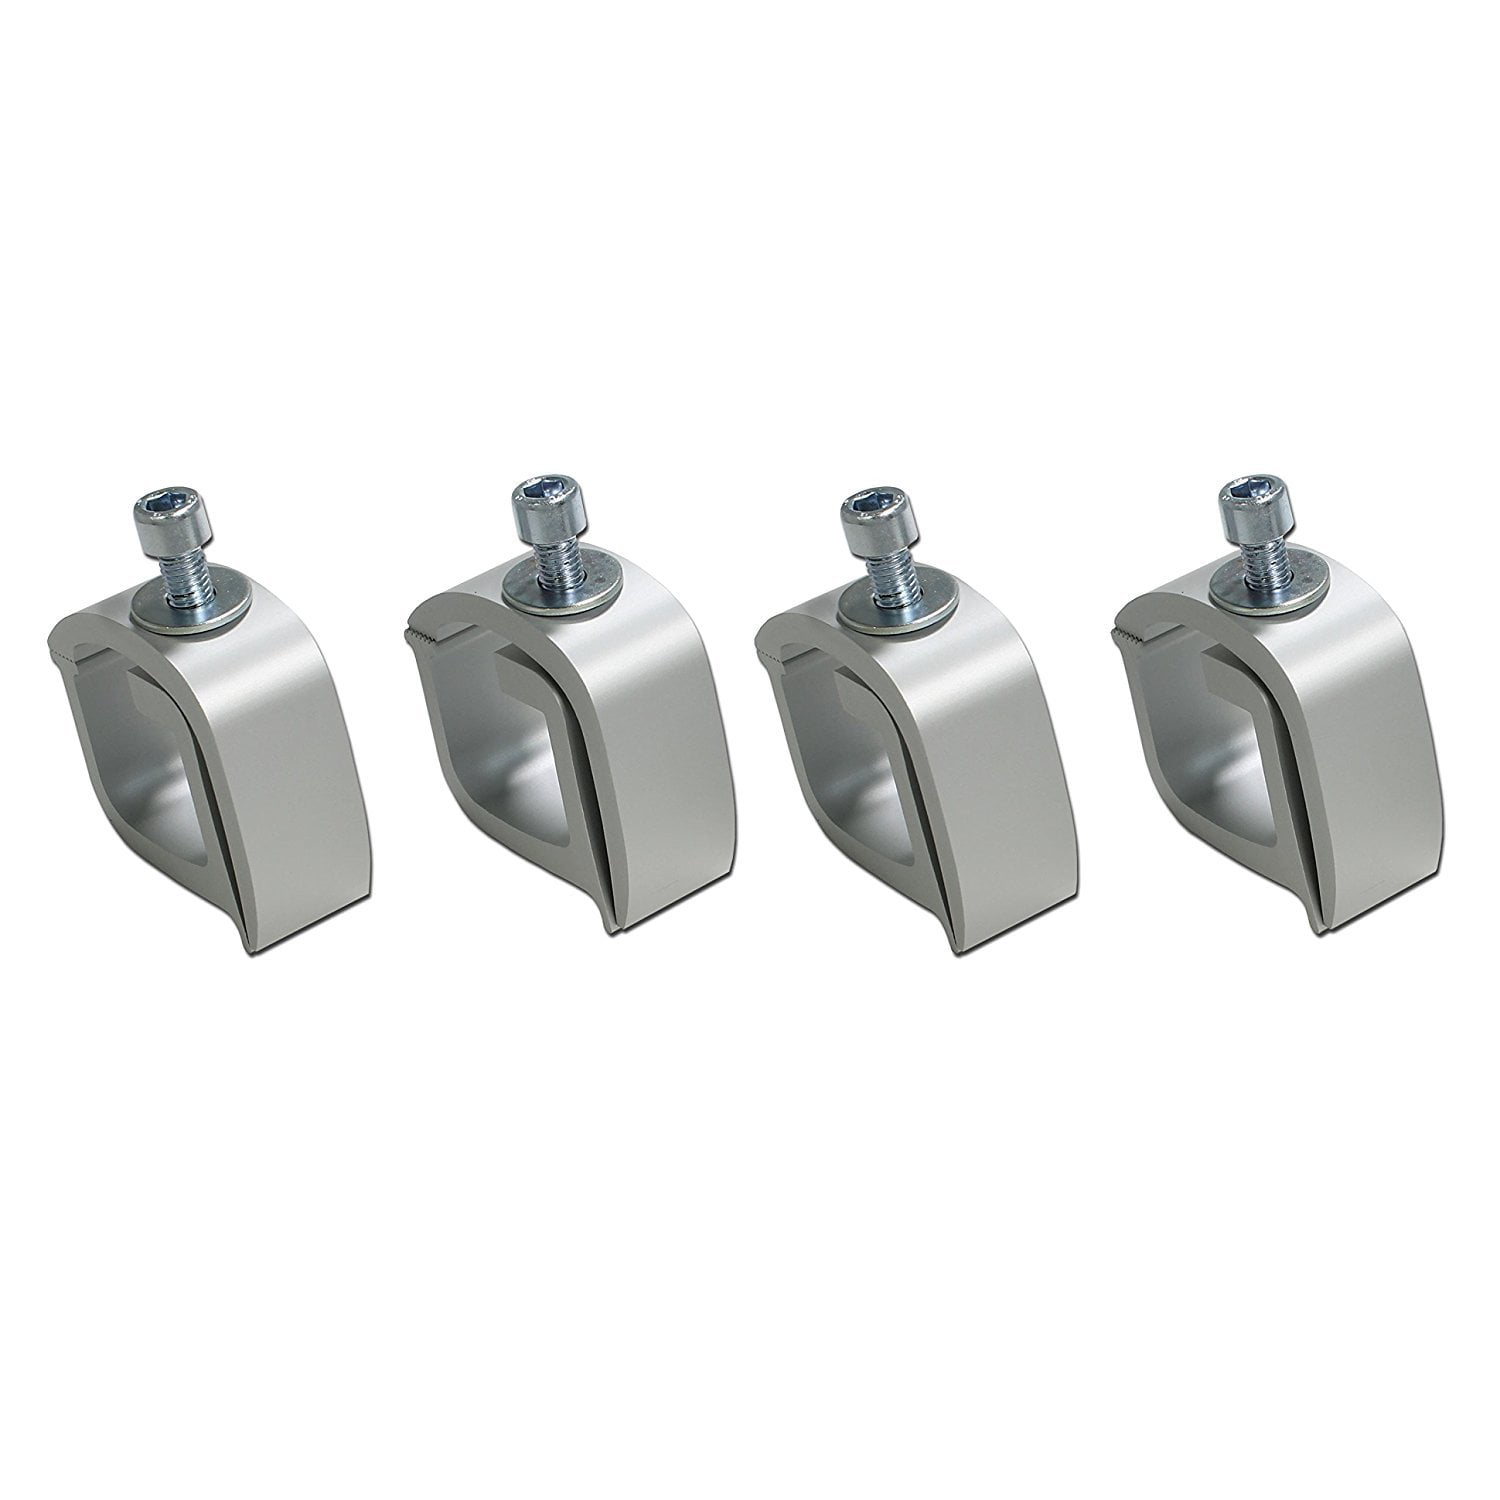 AA-Rack P-AC -01 Set of 4 Aluminum C-Clamps for Non-Drilling Truck Rack /& Camper Shell Installation-Black 4